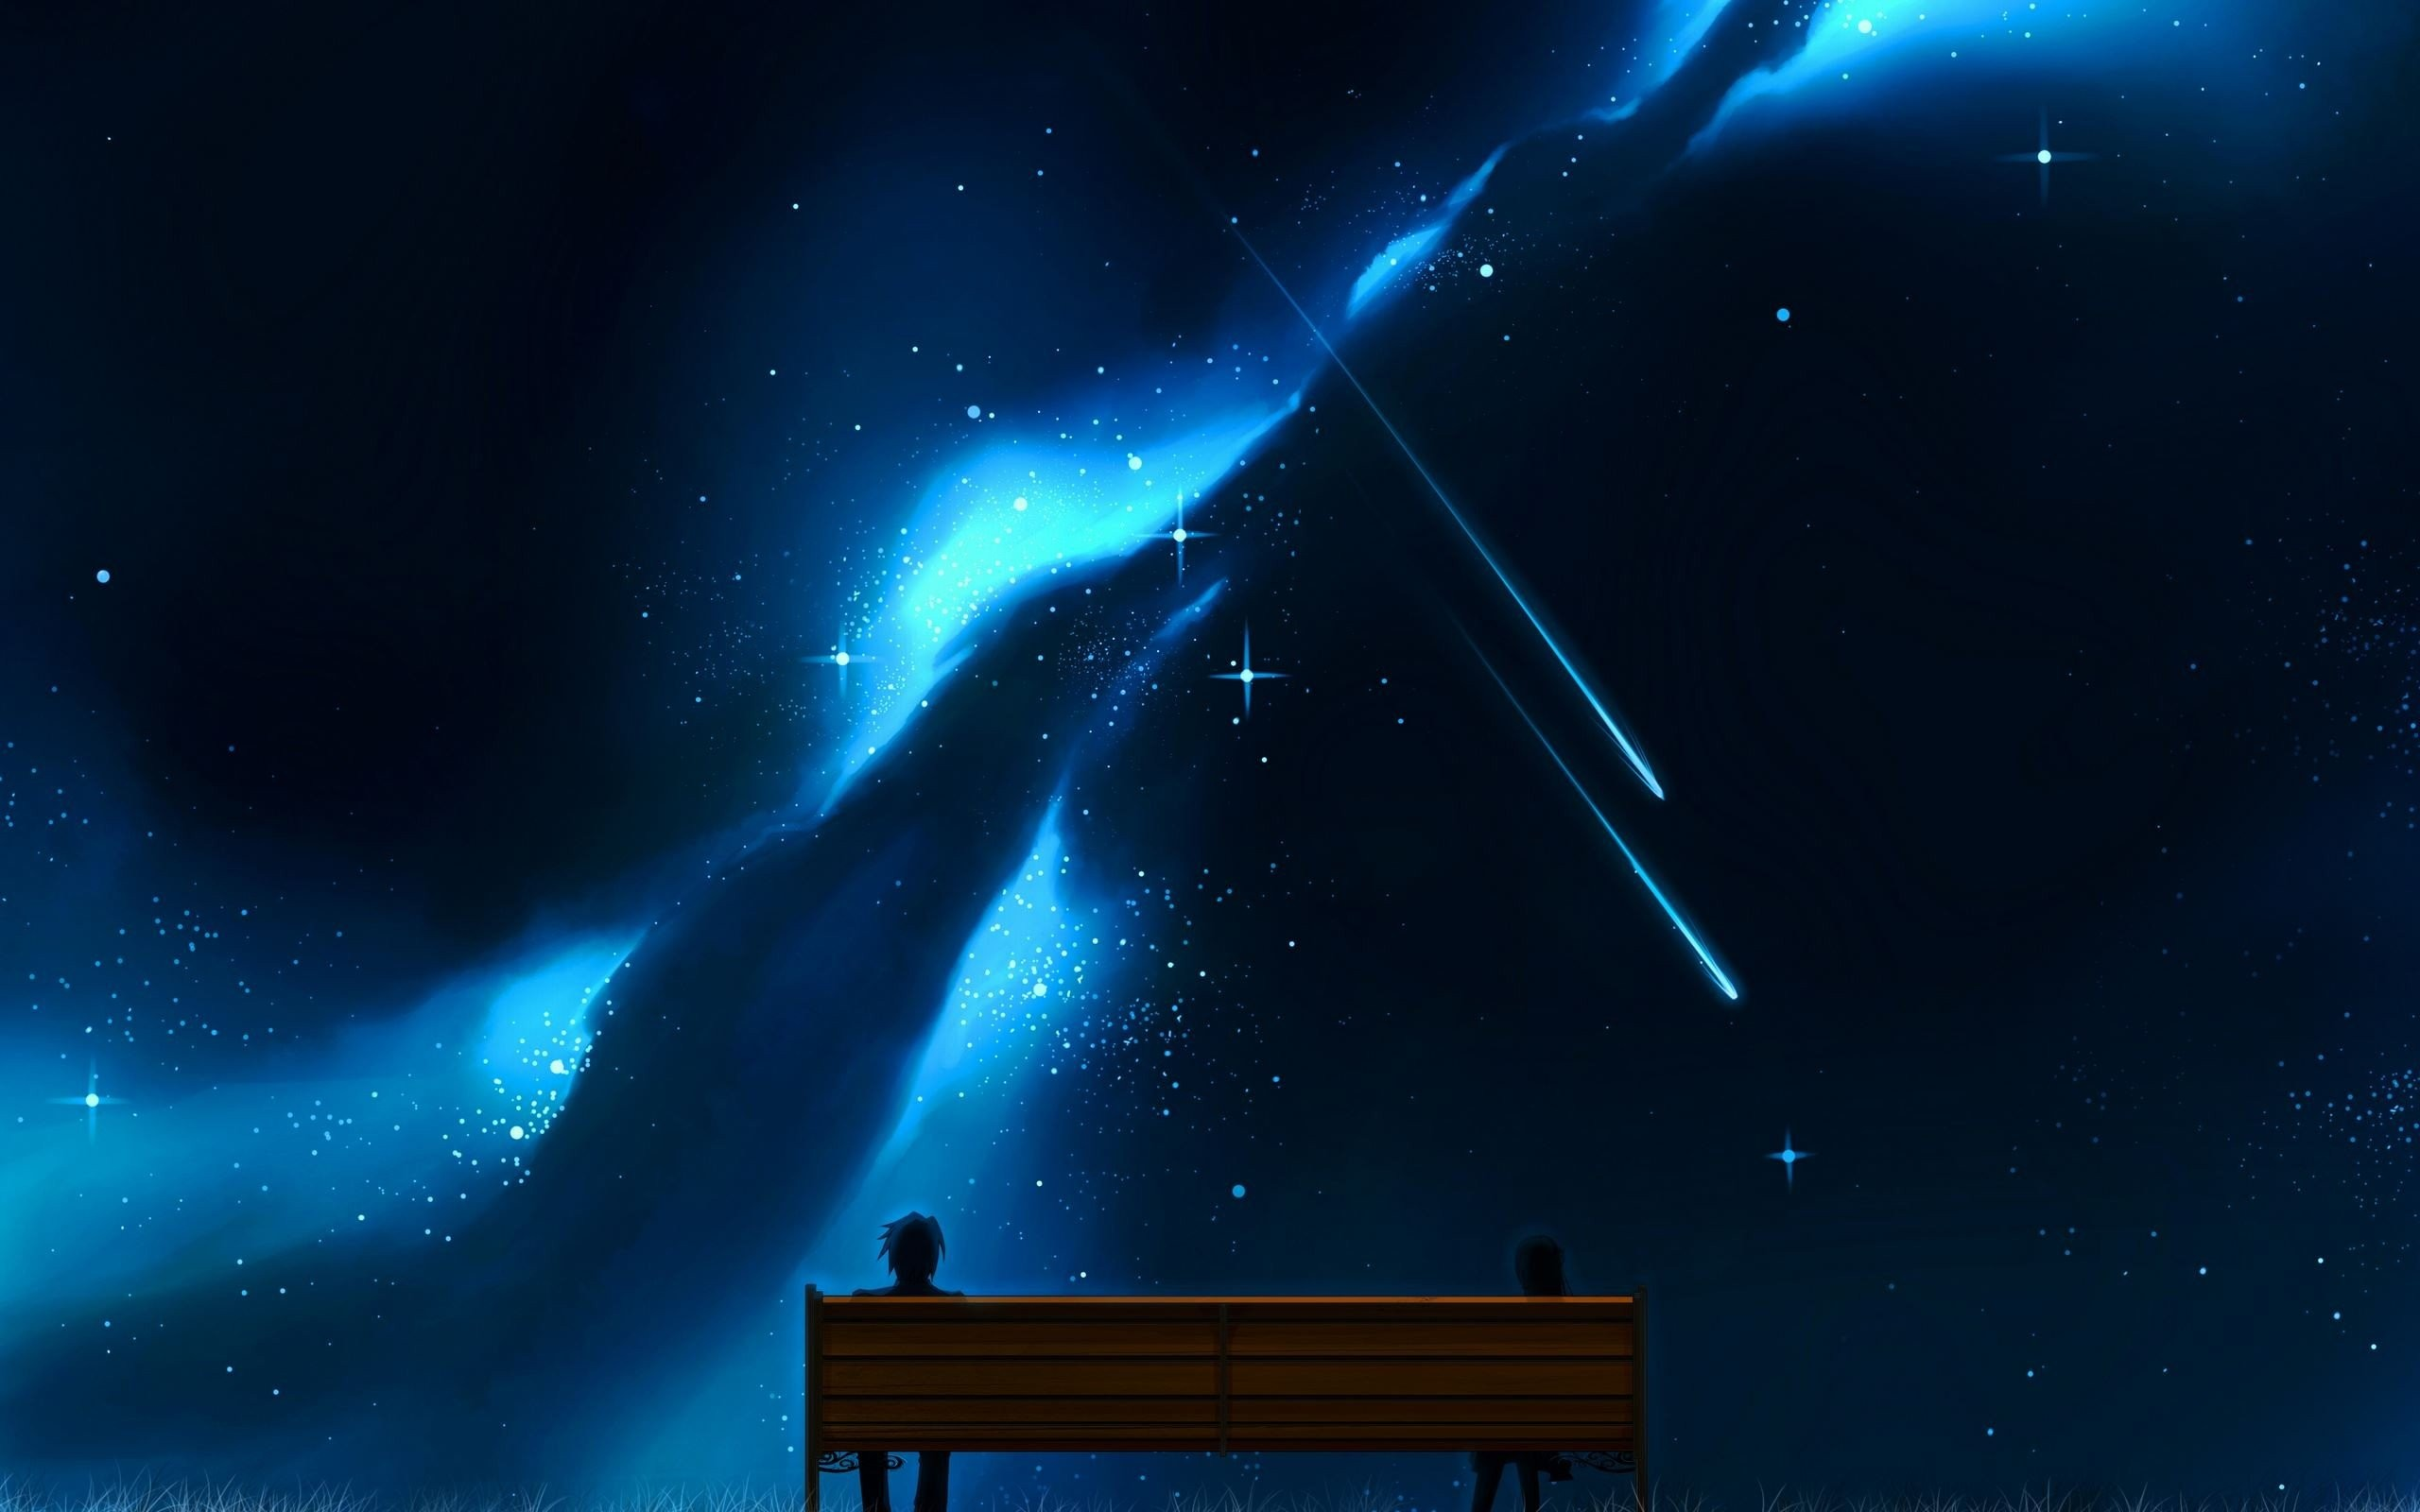 Sky Anime Dark Anime Background Scenery ① Download Free Stunning